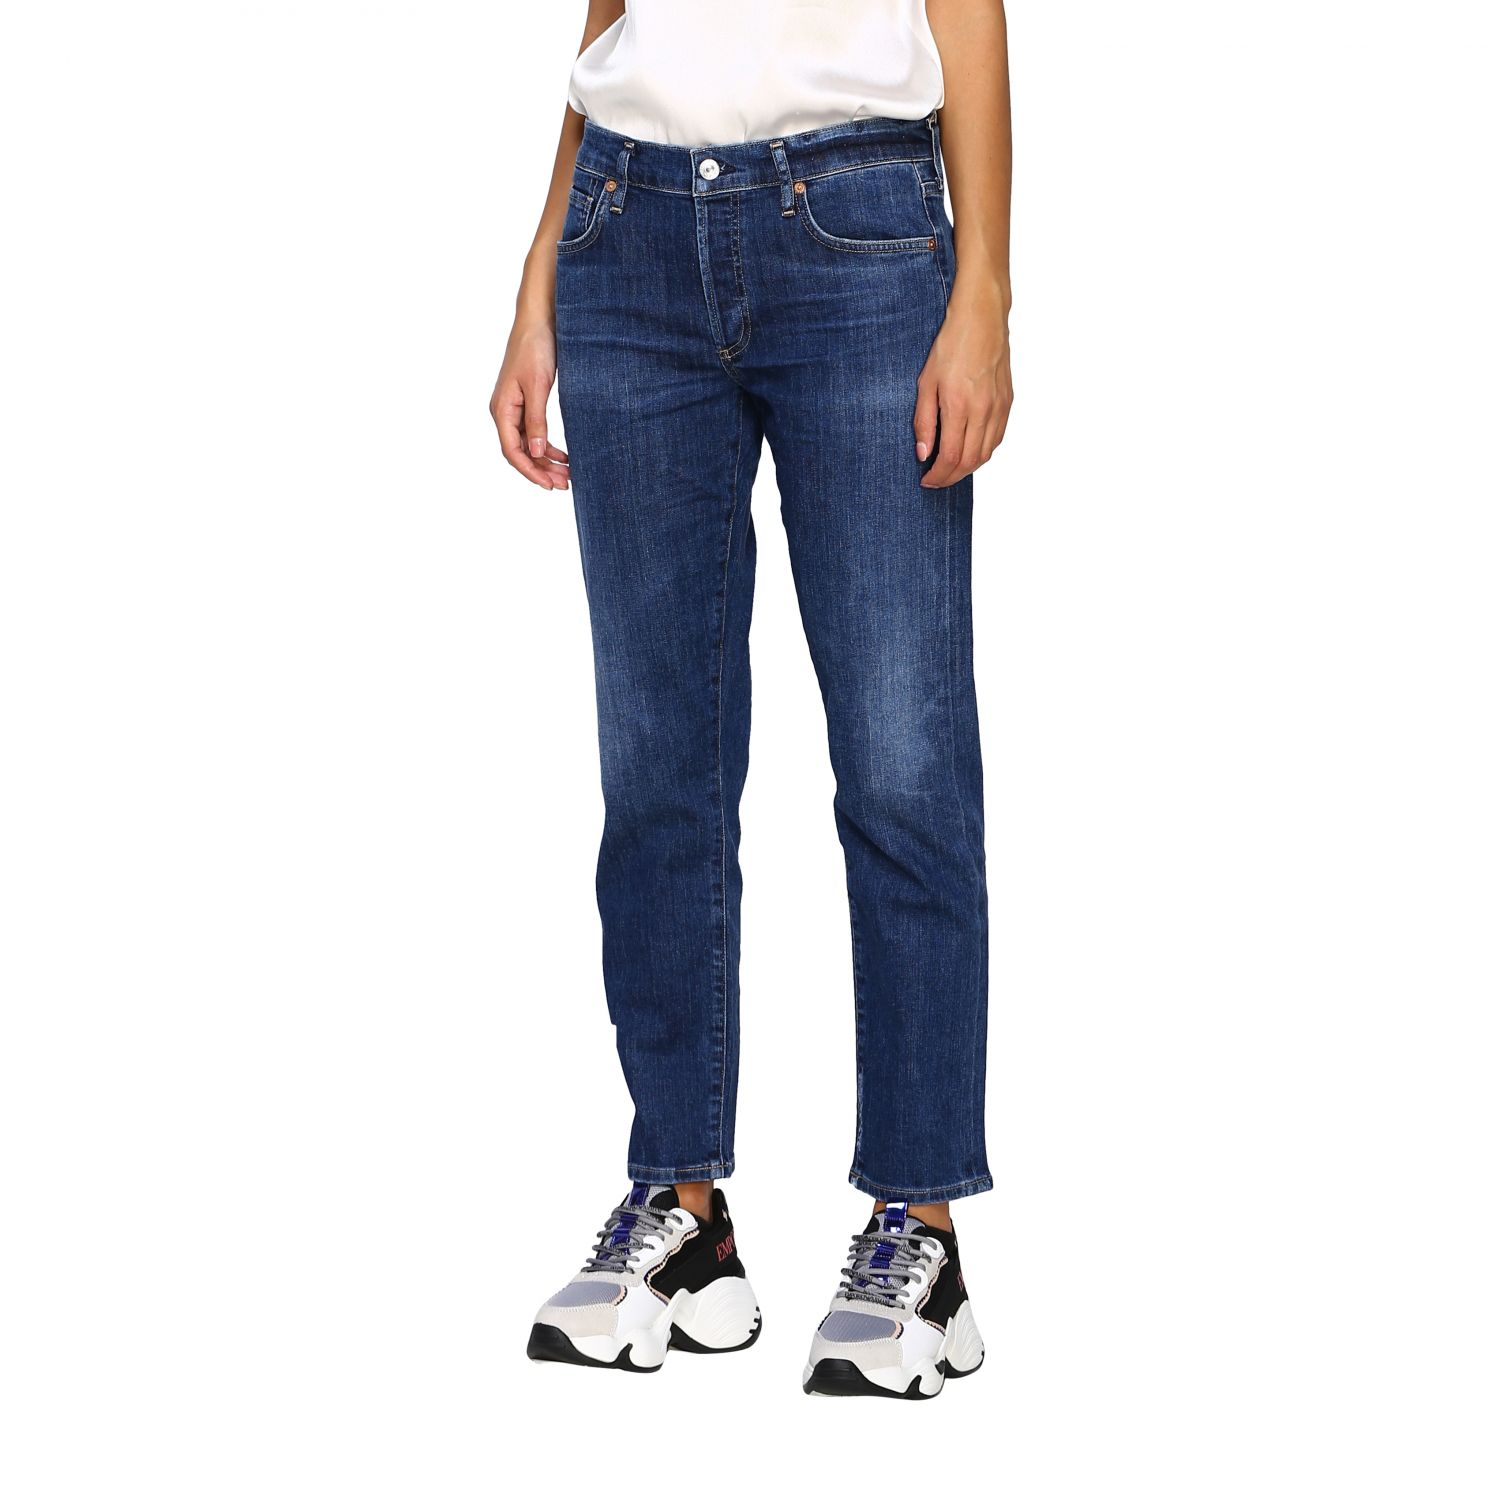 Jeans femme Citizens Of Humanity bleu 4